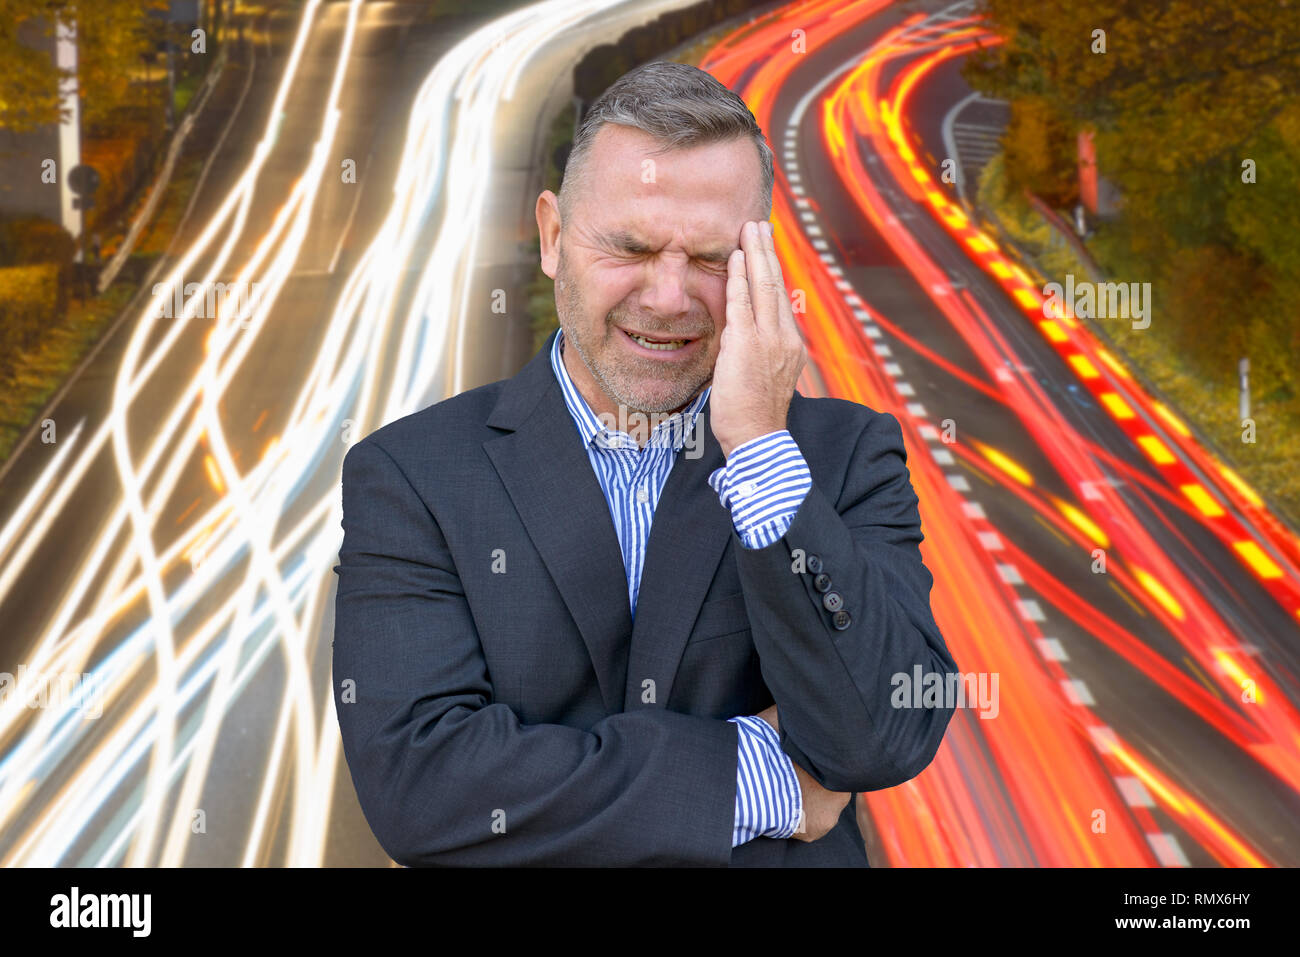 Stressed businessman, or suffering from a headache, standing with his hand to his temple grimacing against Long exposure light trails of traffic on a  - Stock Image